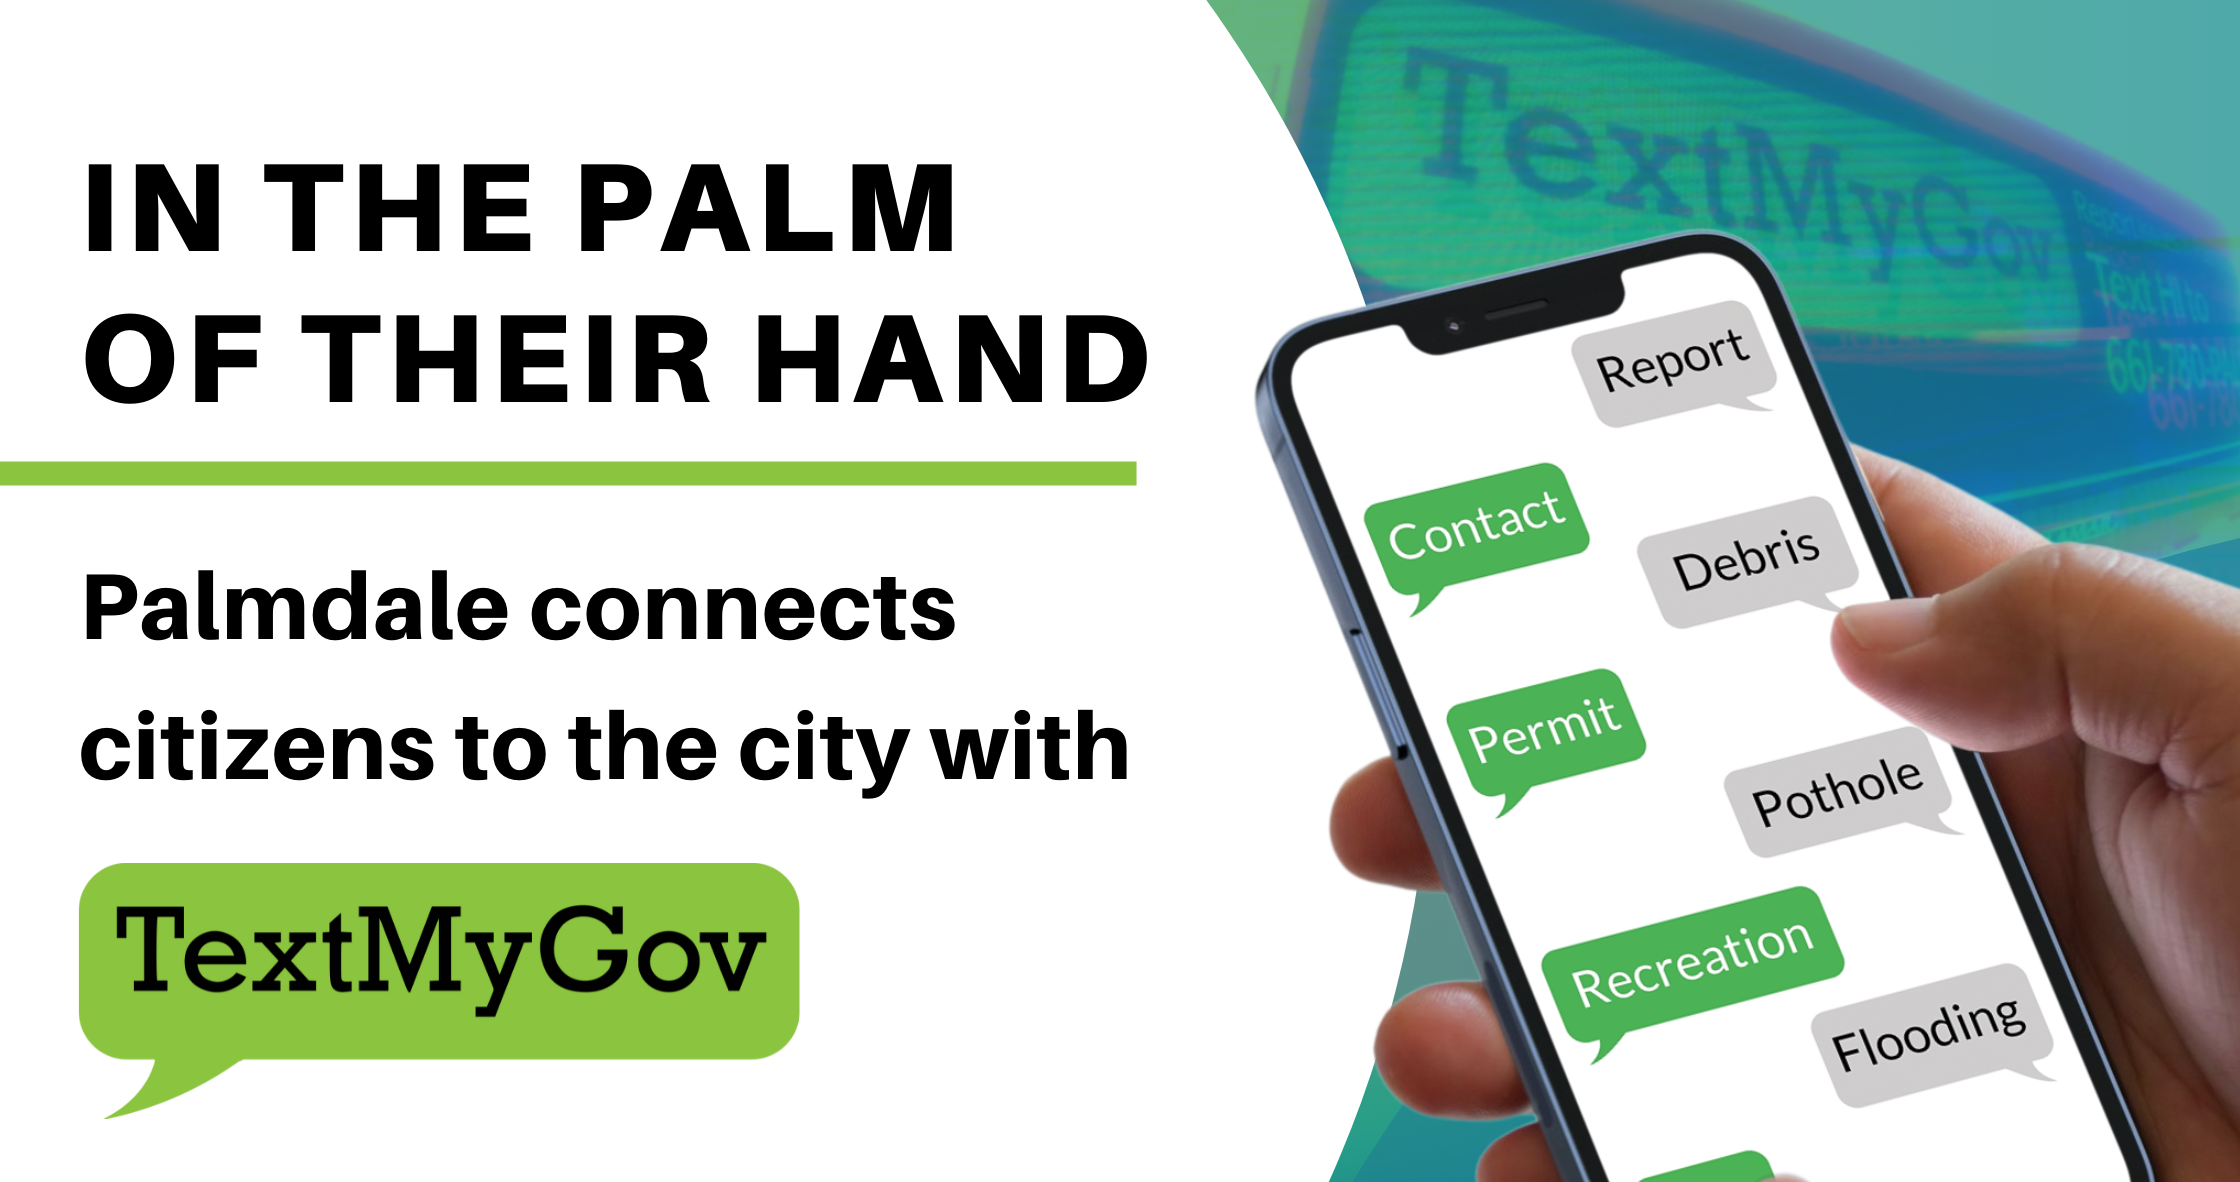 Palmdale connects citizens to city with TextMyGov